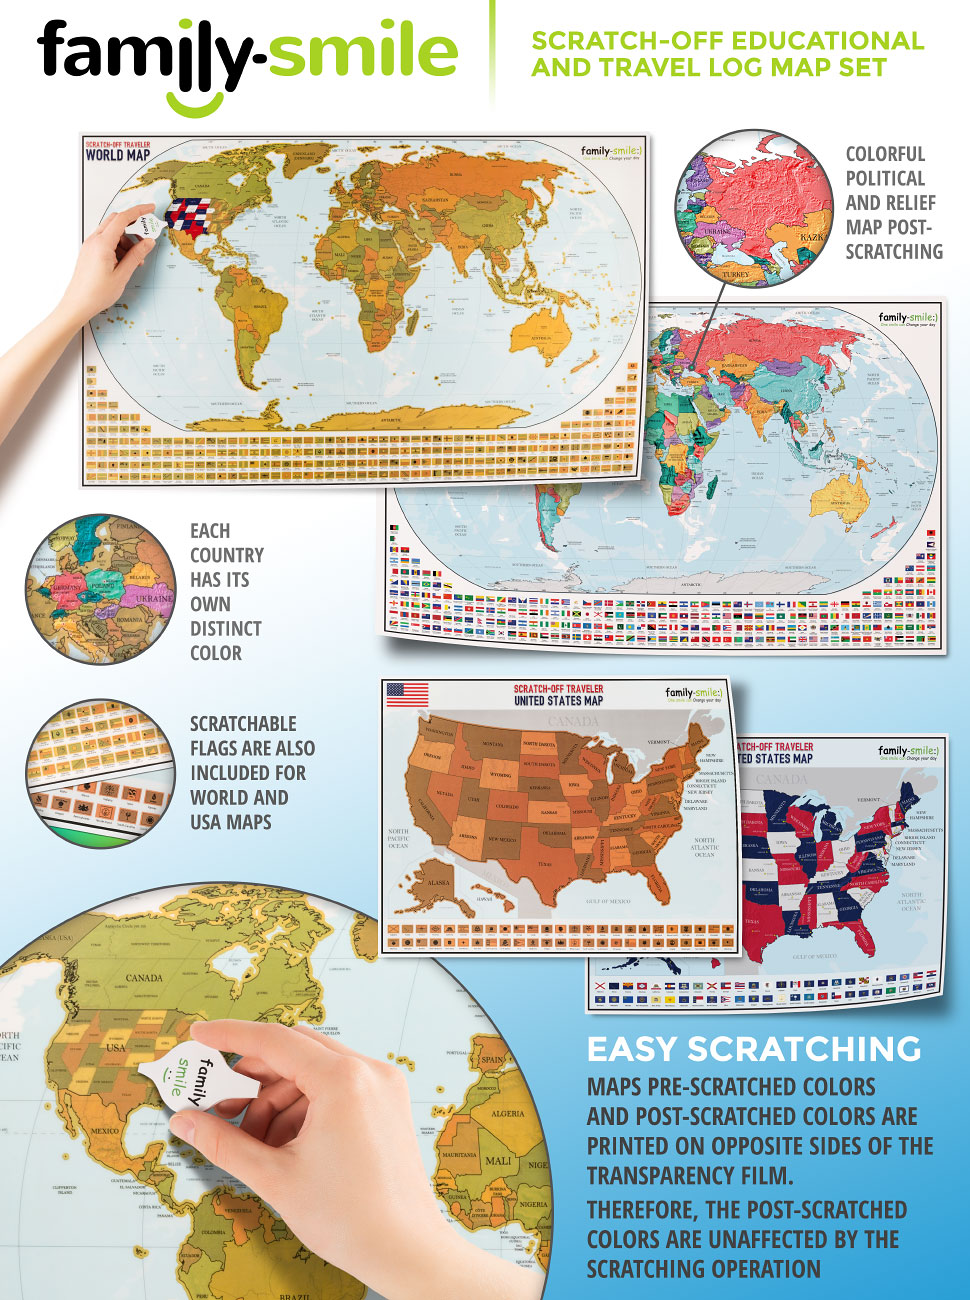 Family Smile S Scratch Off Educational And Travel Log Map Set Is A Product Aimed At Extending Your Traveling Abroad And World Educational Experience